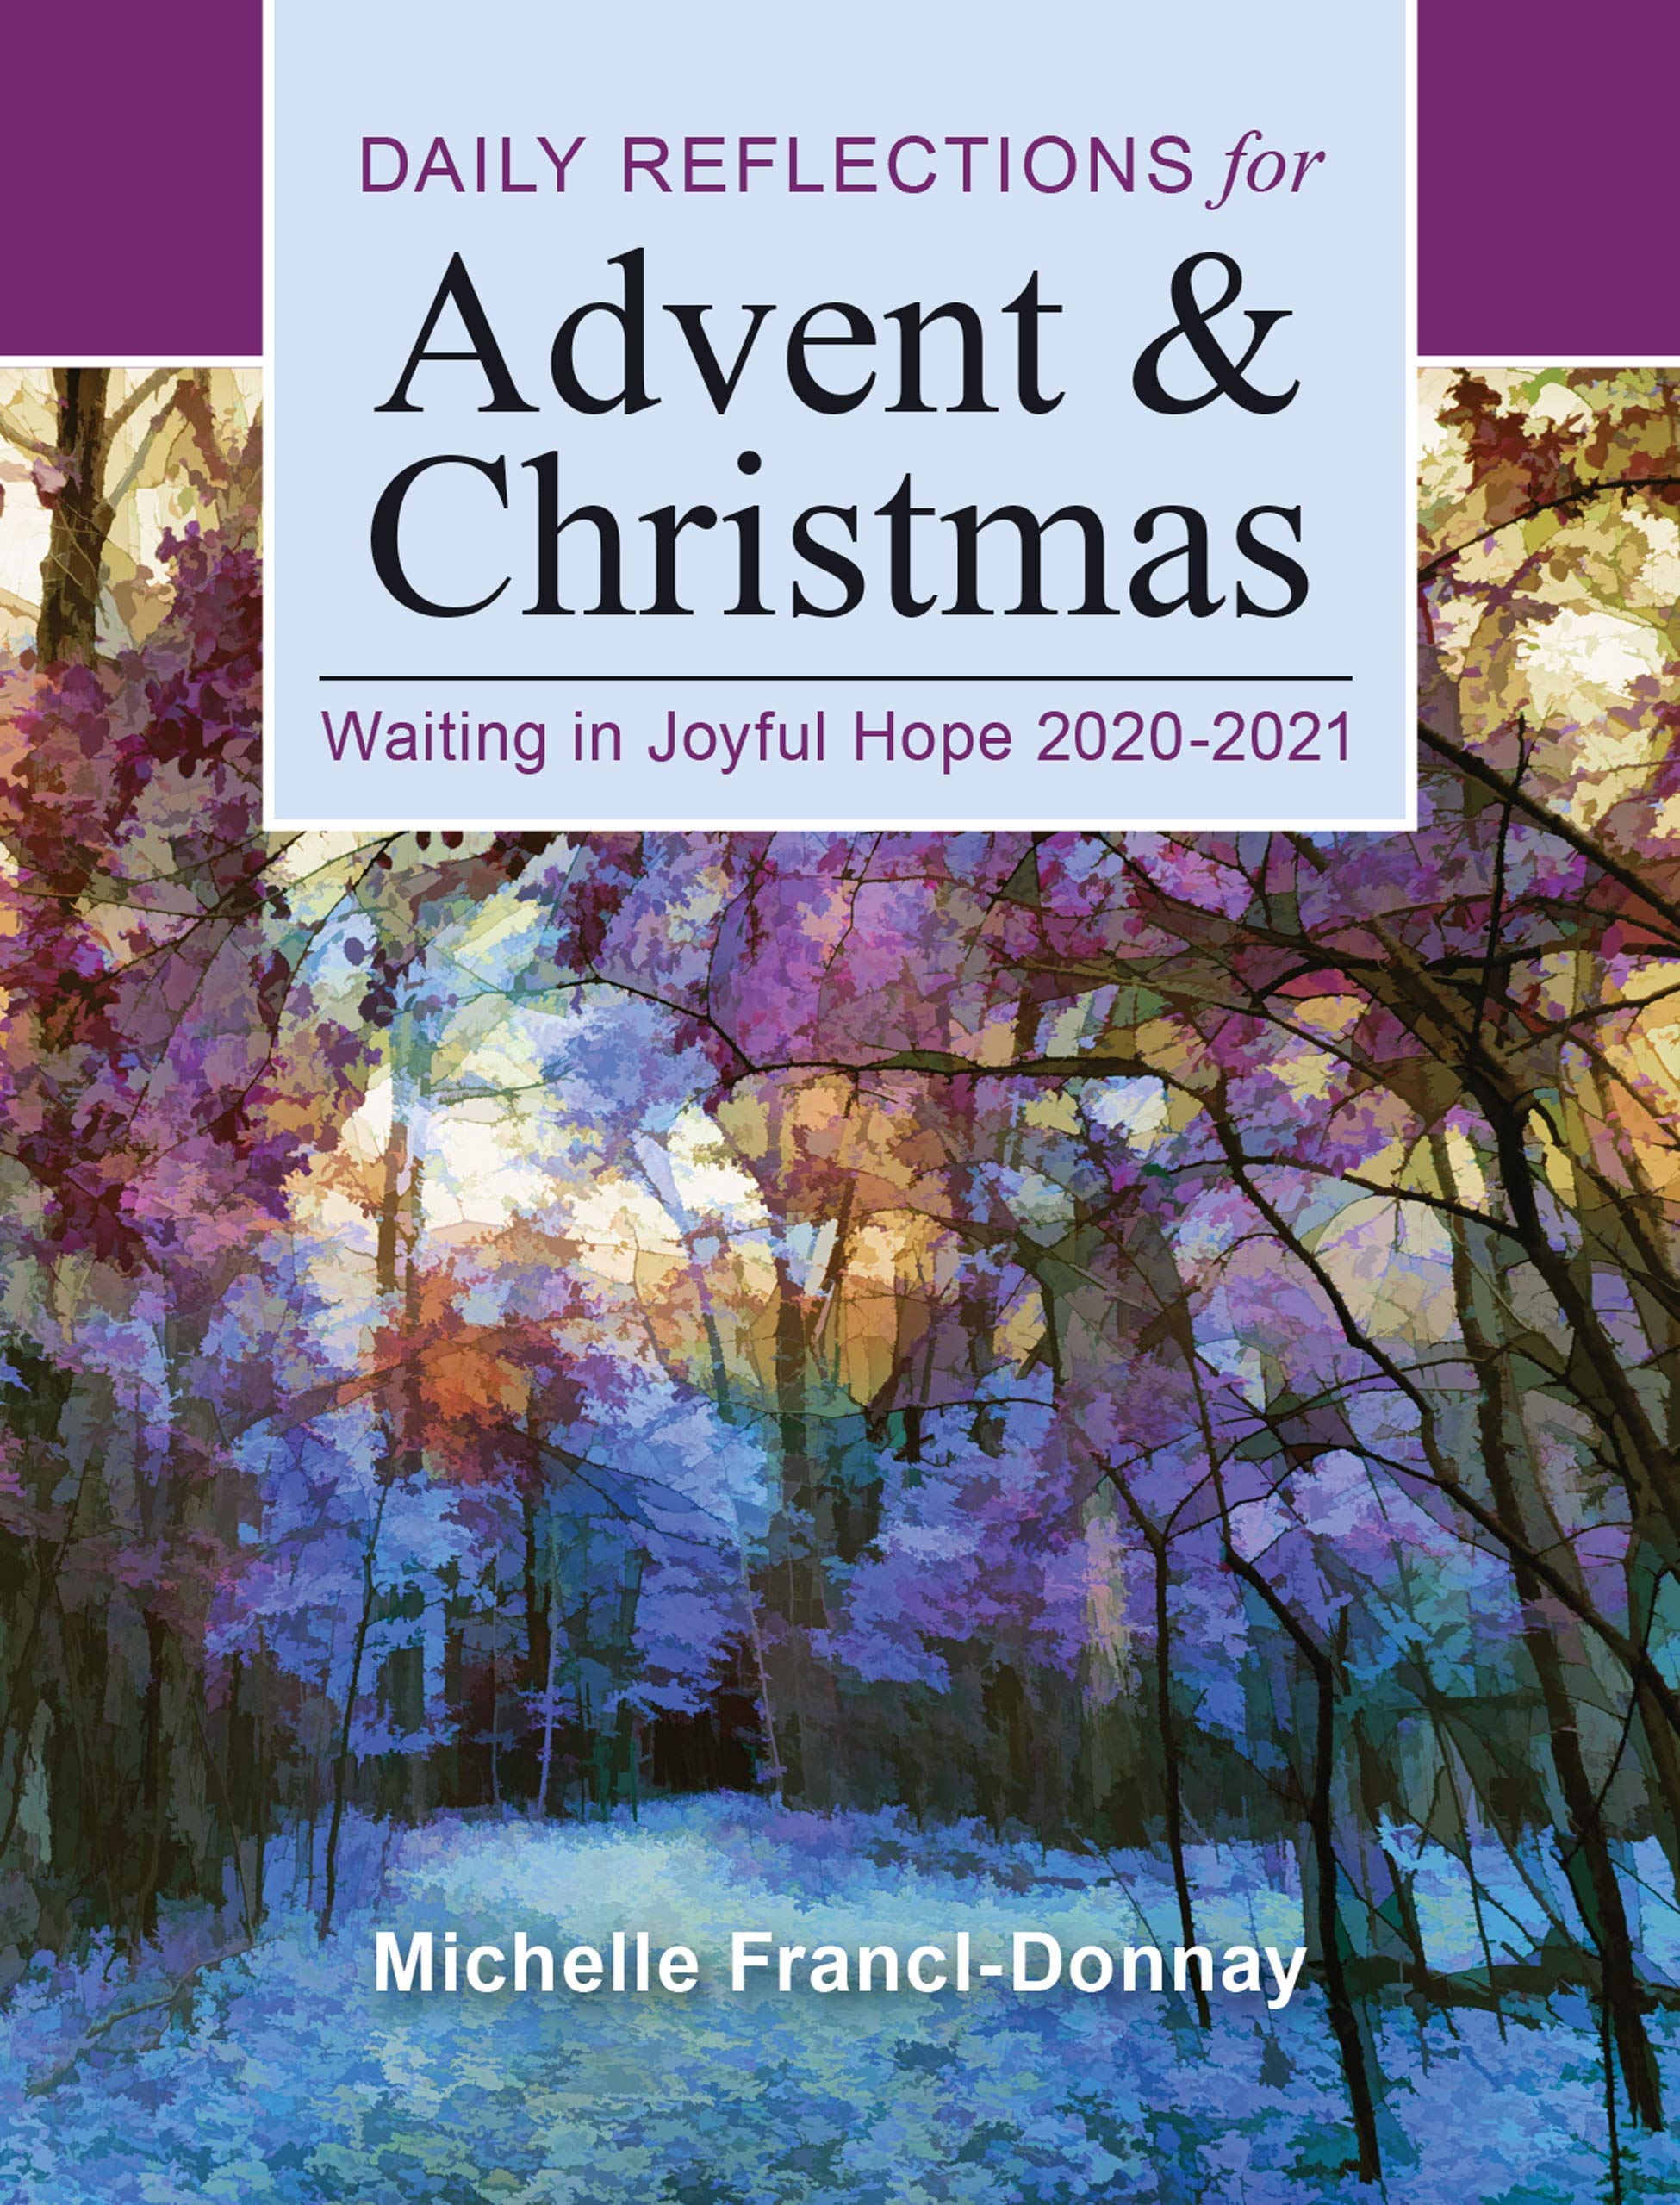 Christmas Reflections 2021 Buy Waiting In Joyful Hope Large Print Daily Reflections For Advent And Christmas 2020 2021 Book Online At Low Prices In India Waiting In Joyful Hope Large Print Daily Reflections For Advent